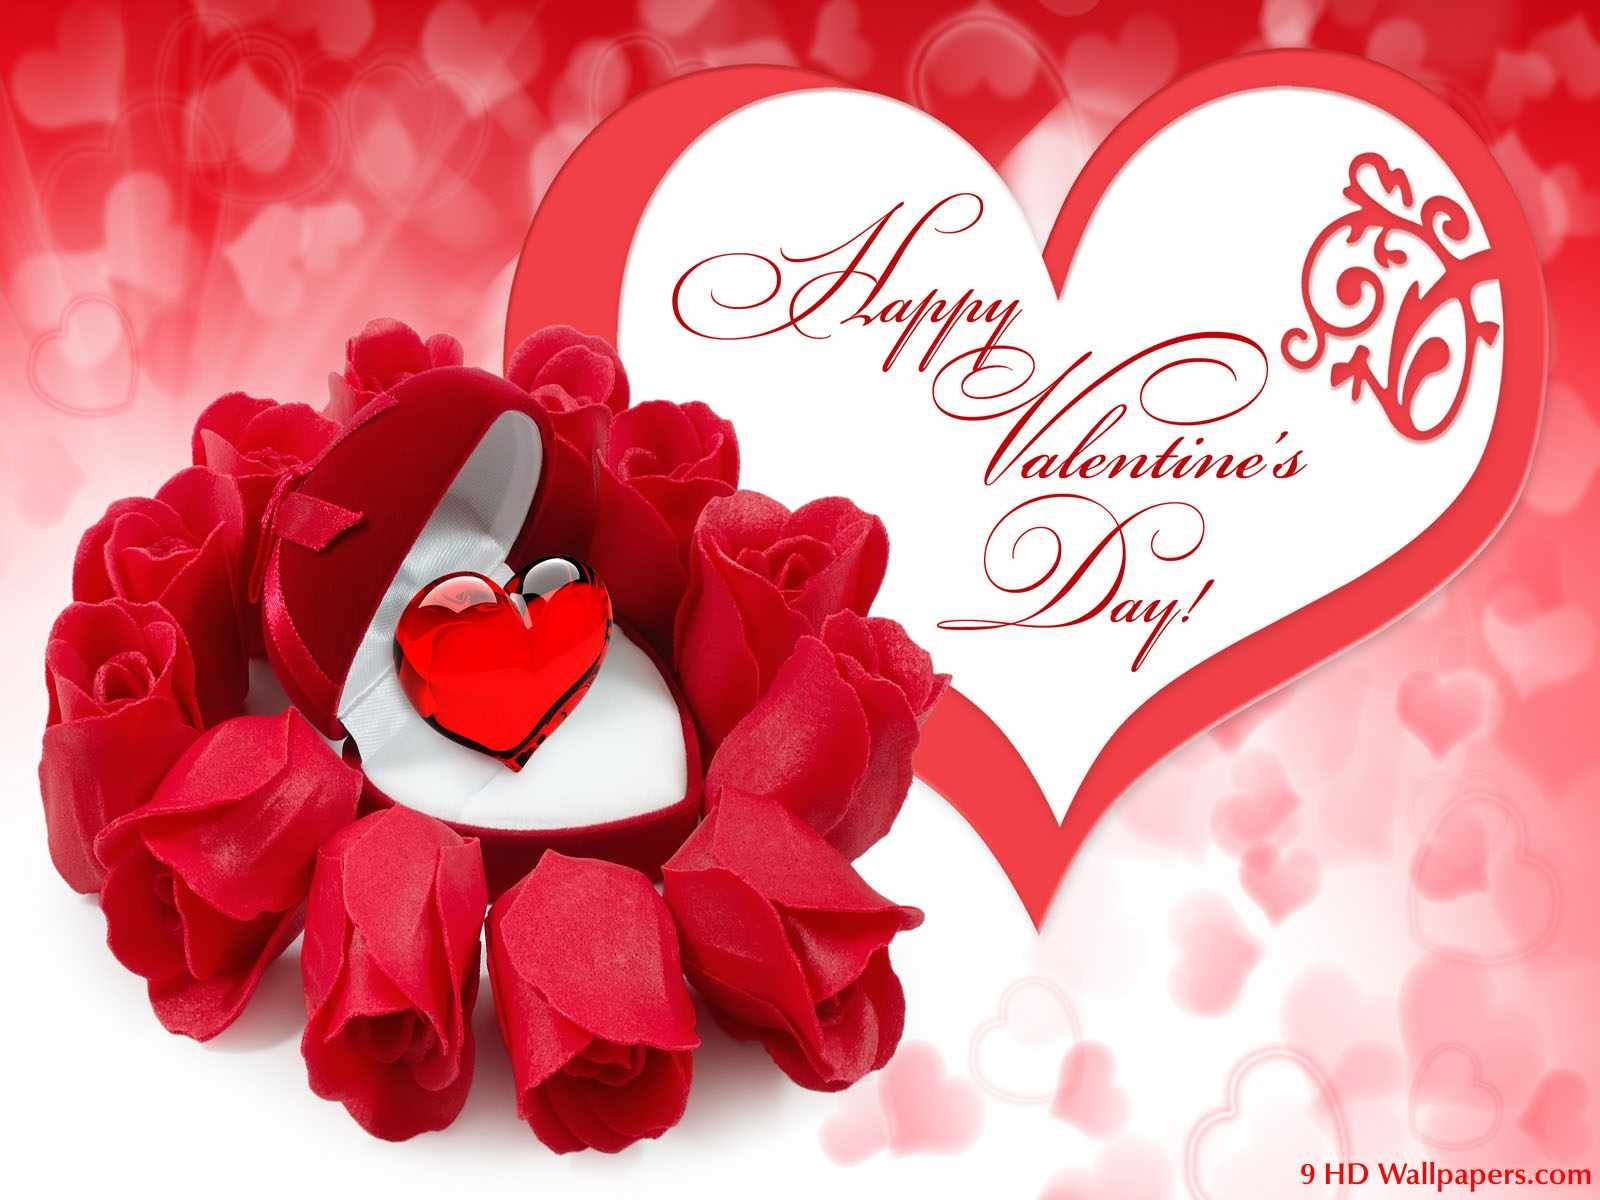 Valentinesdaygreetingsforfriends valentines day greeting valentinesdaygreetingsforfriends valentines day greeting cards for him kristyandbryce Image collections